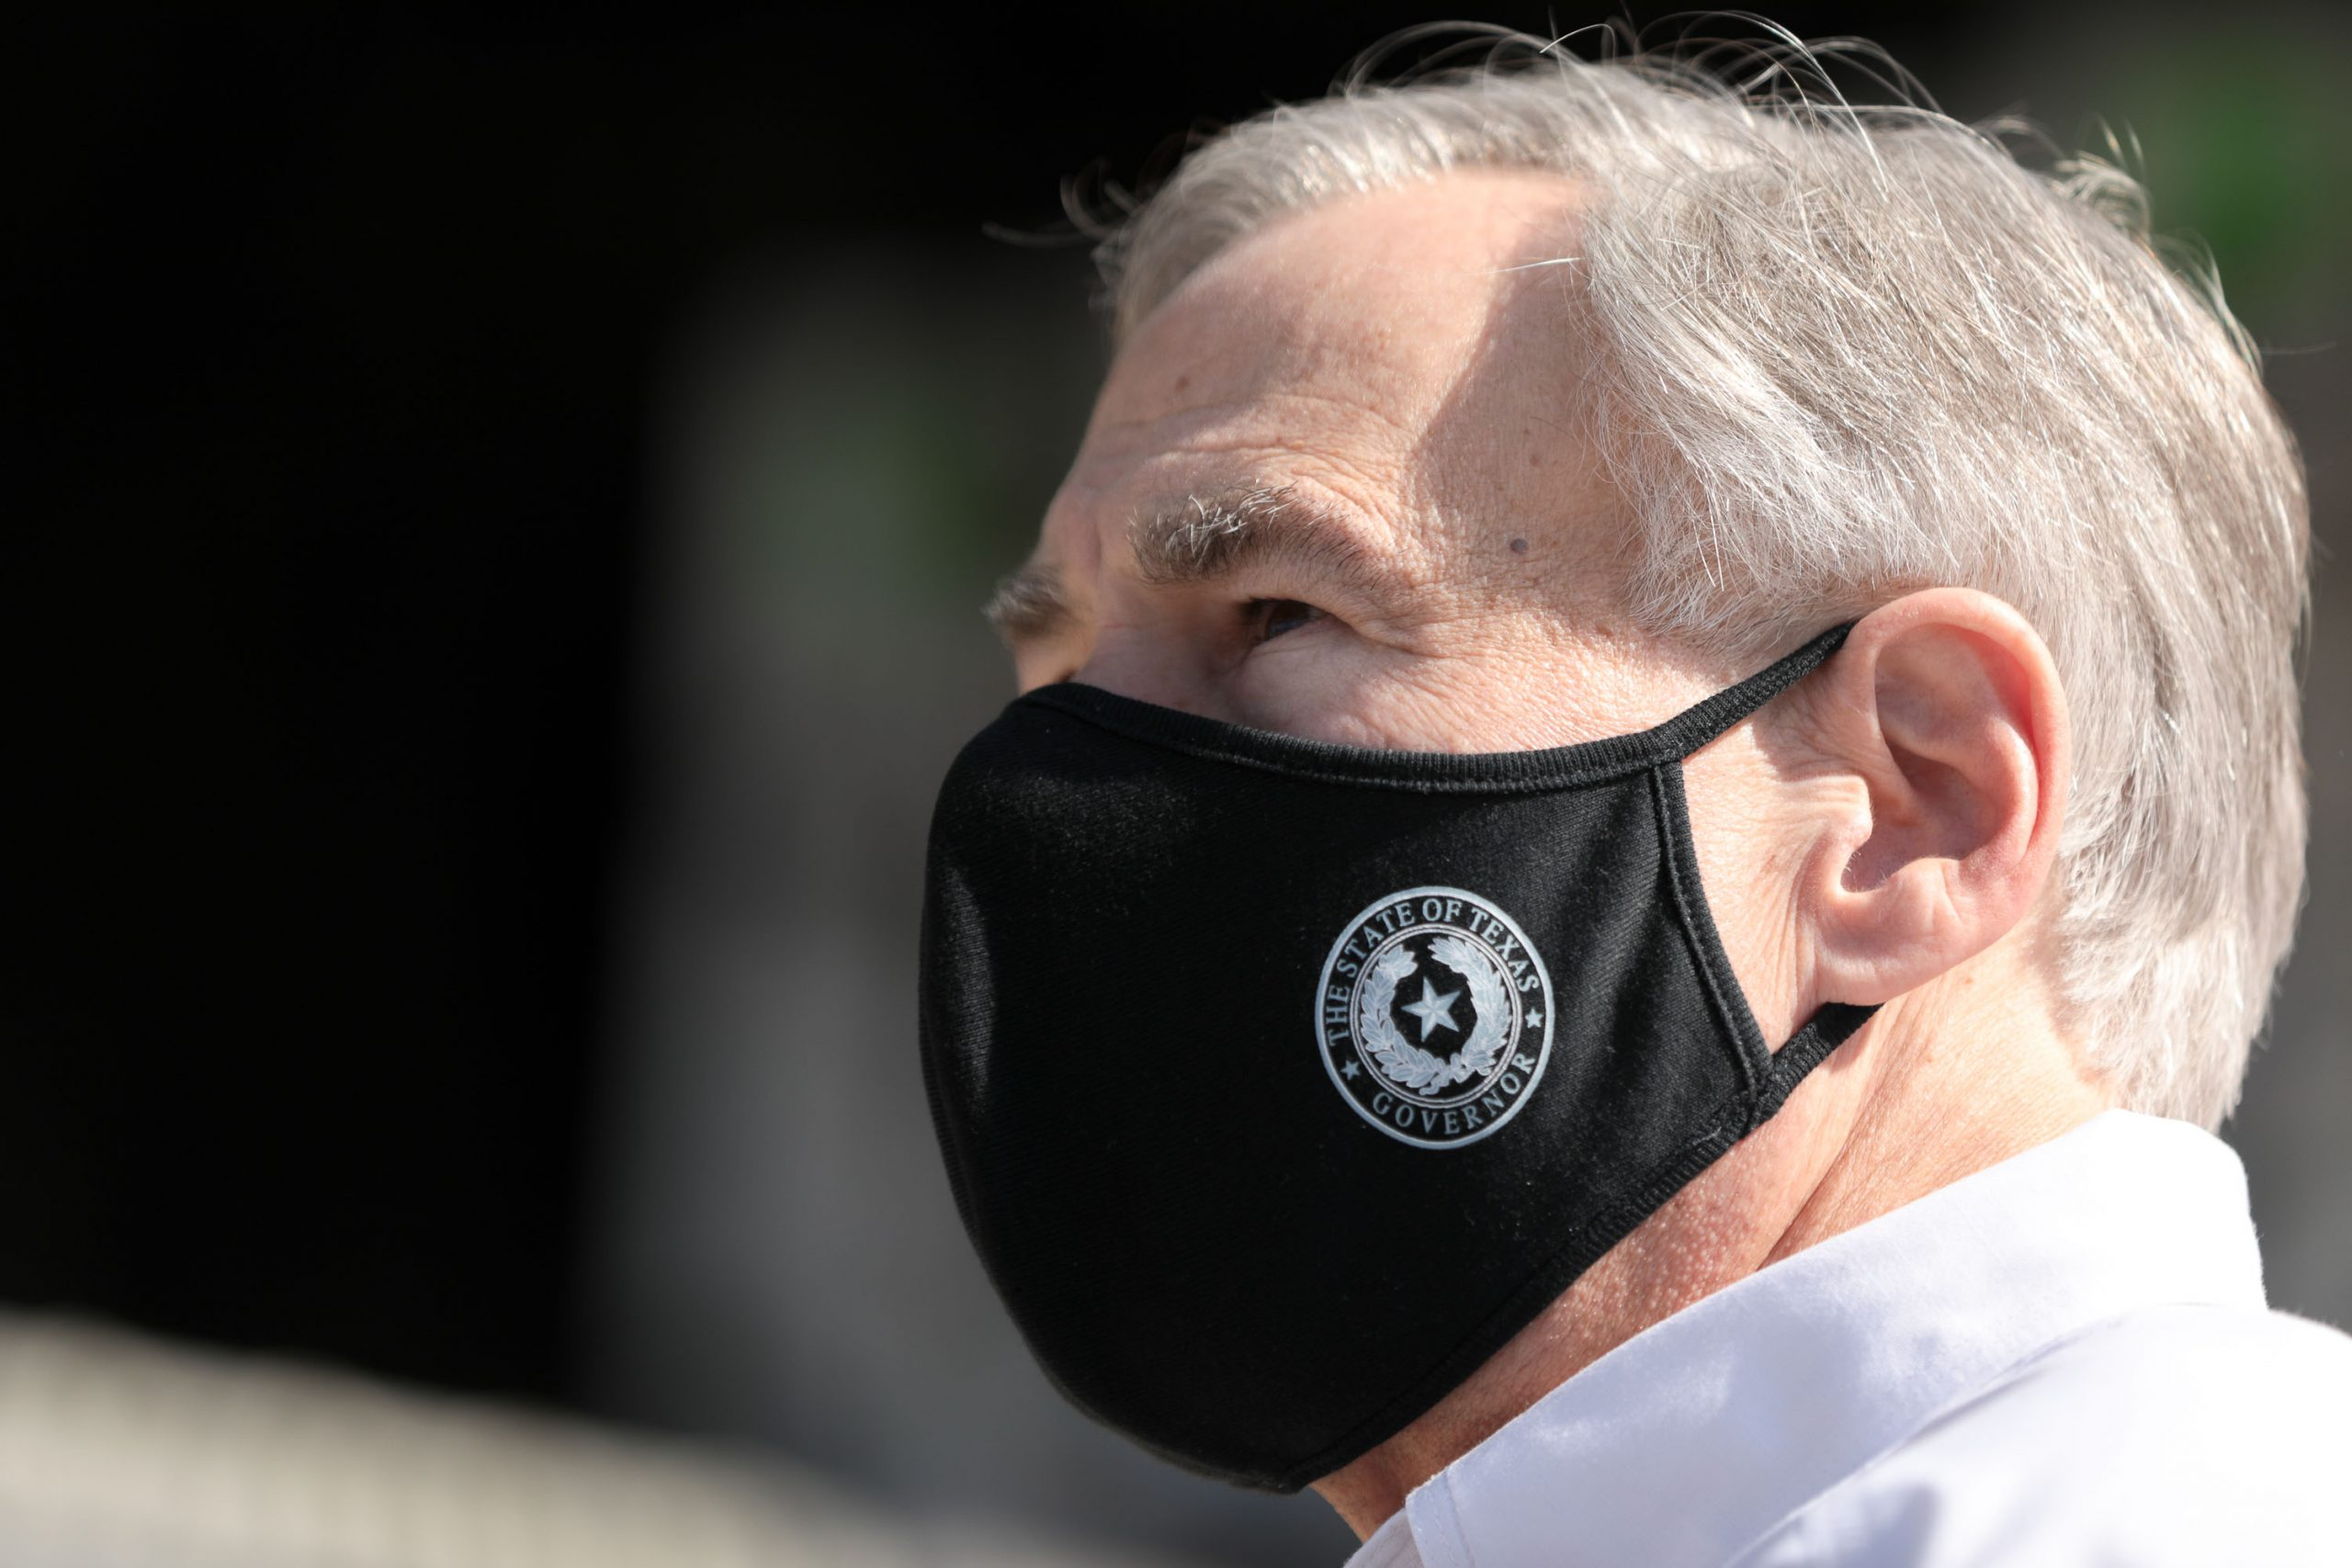 Gov. Greg Abbott on Tuesday announced he is rescinding the statewide mask mandate and business capacity limits effective March 10.